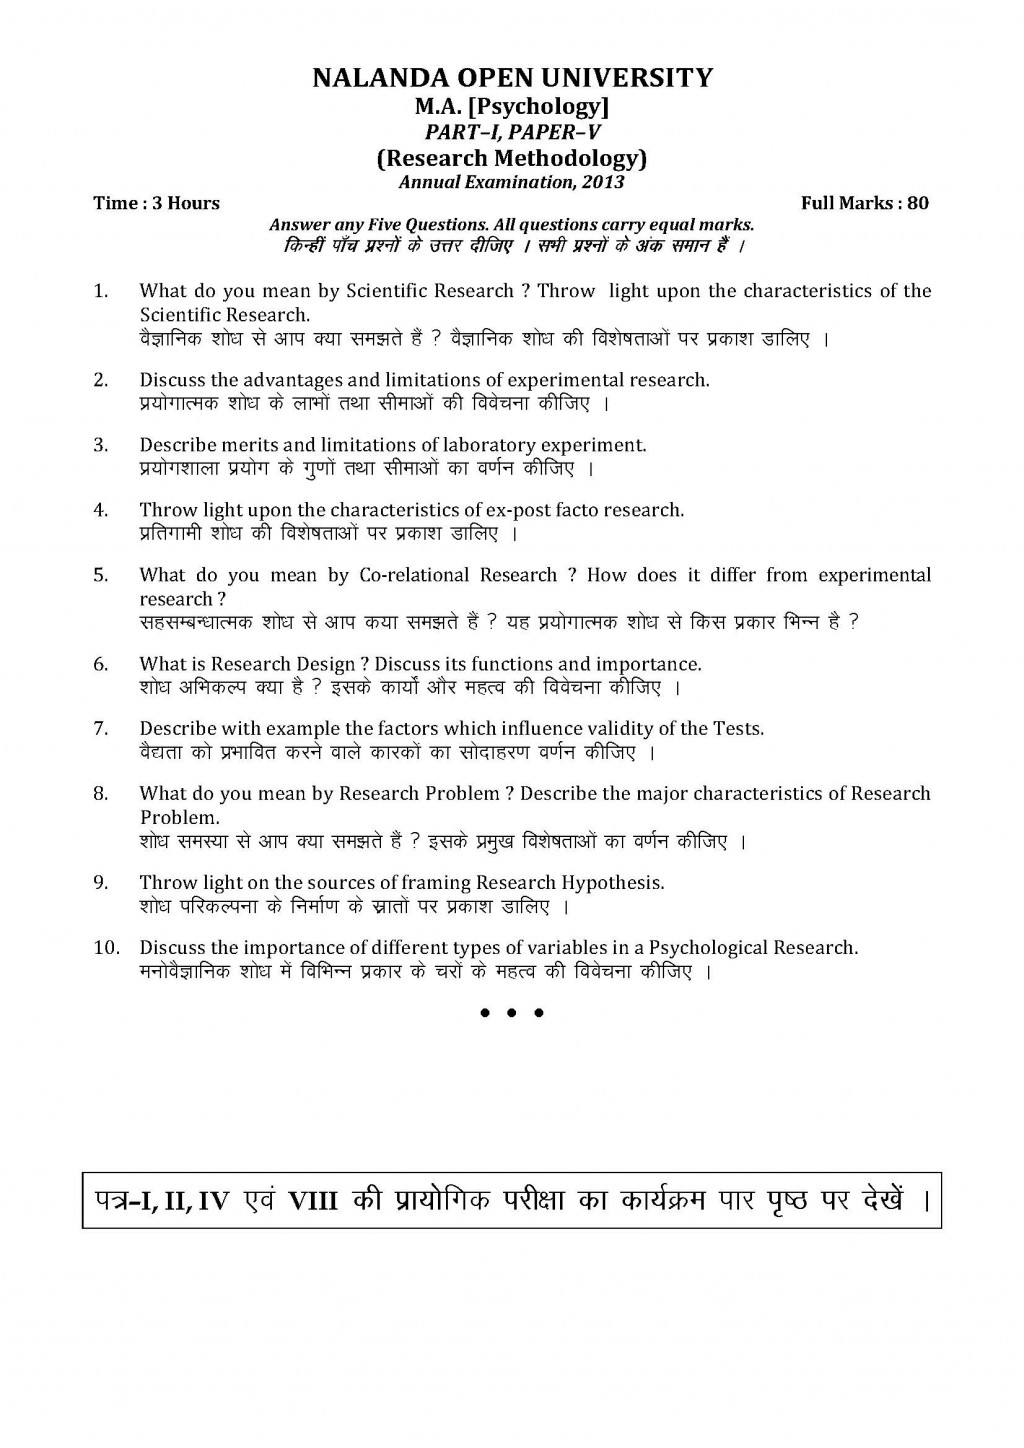 007 Ma Psychology Research Methodology Part I Paper V Dreaded Pdf Question For Phd Example Sample Large